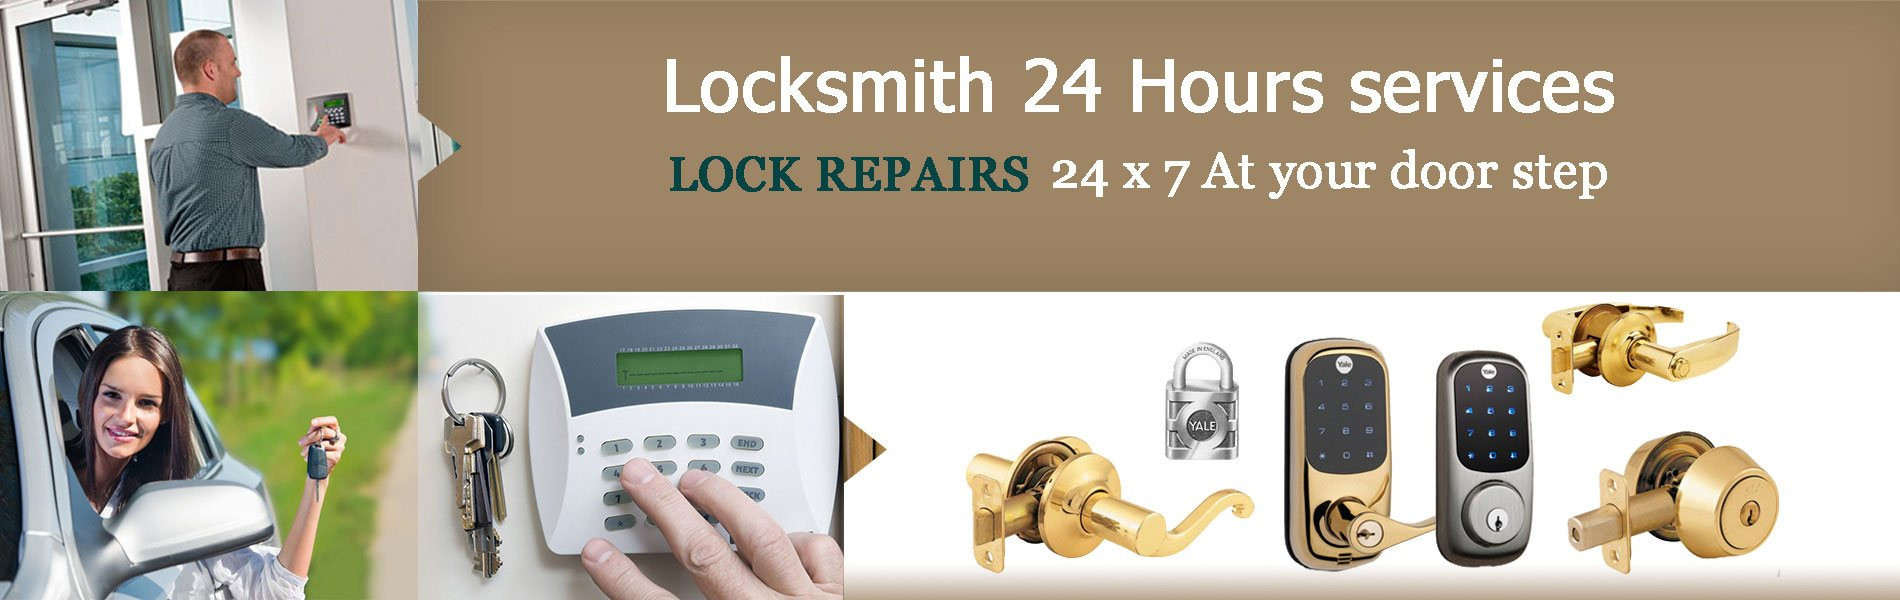 Elite Locksmith Services Redondo Beach, CA 310-955-1739